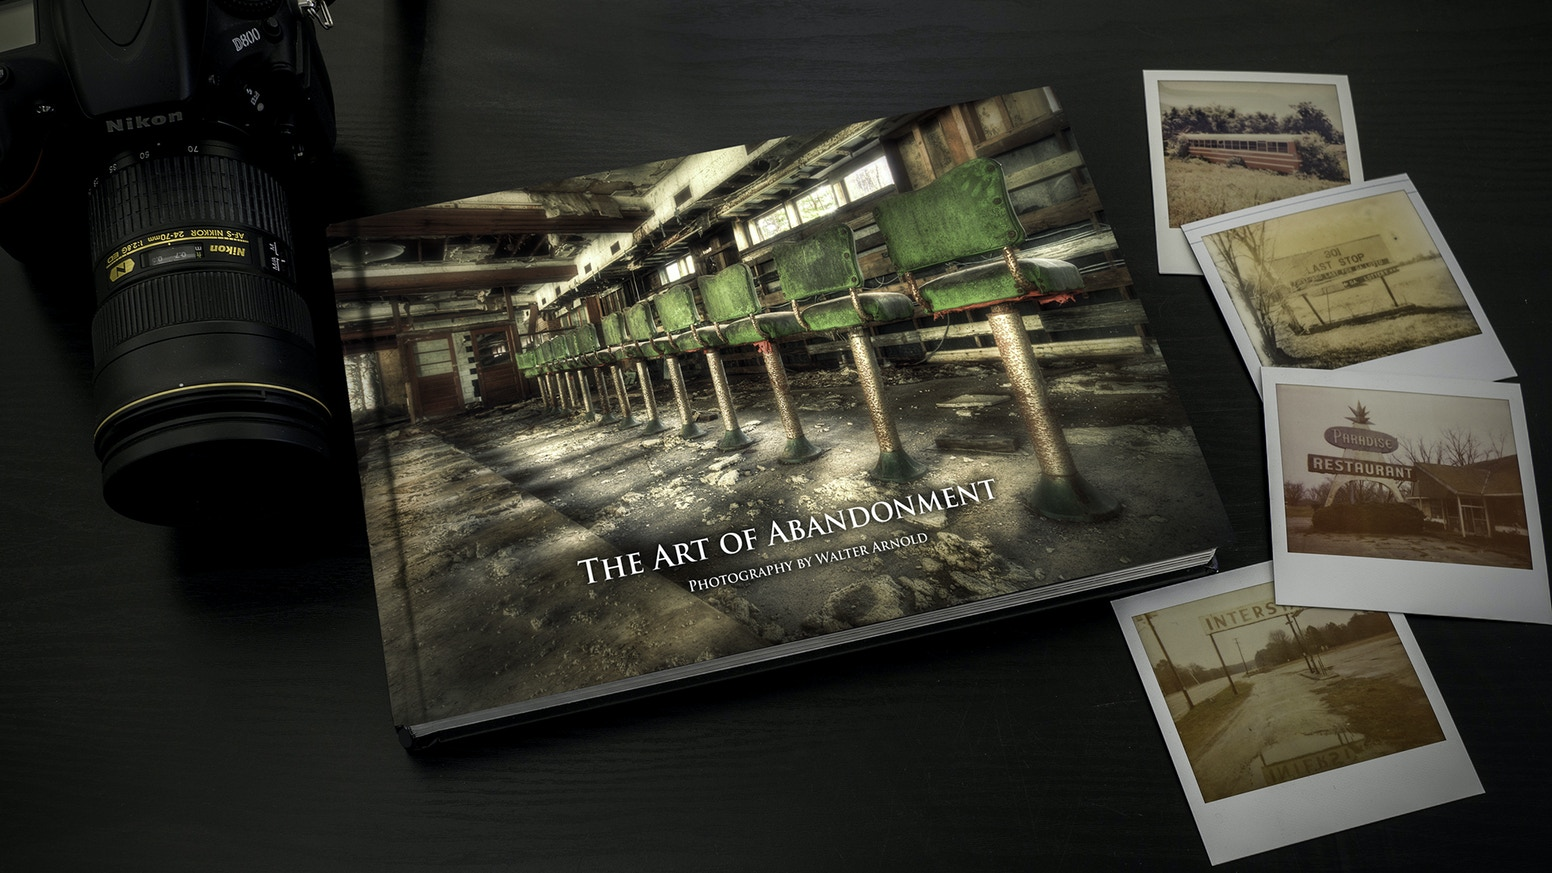 The Art of Abandonment is an award winning photographic series that explores the beauty and history of our modern ruins.